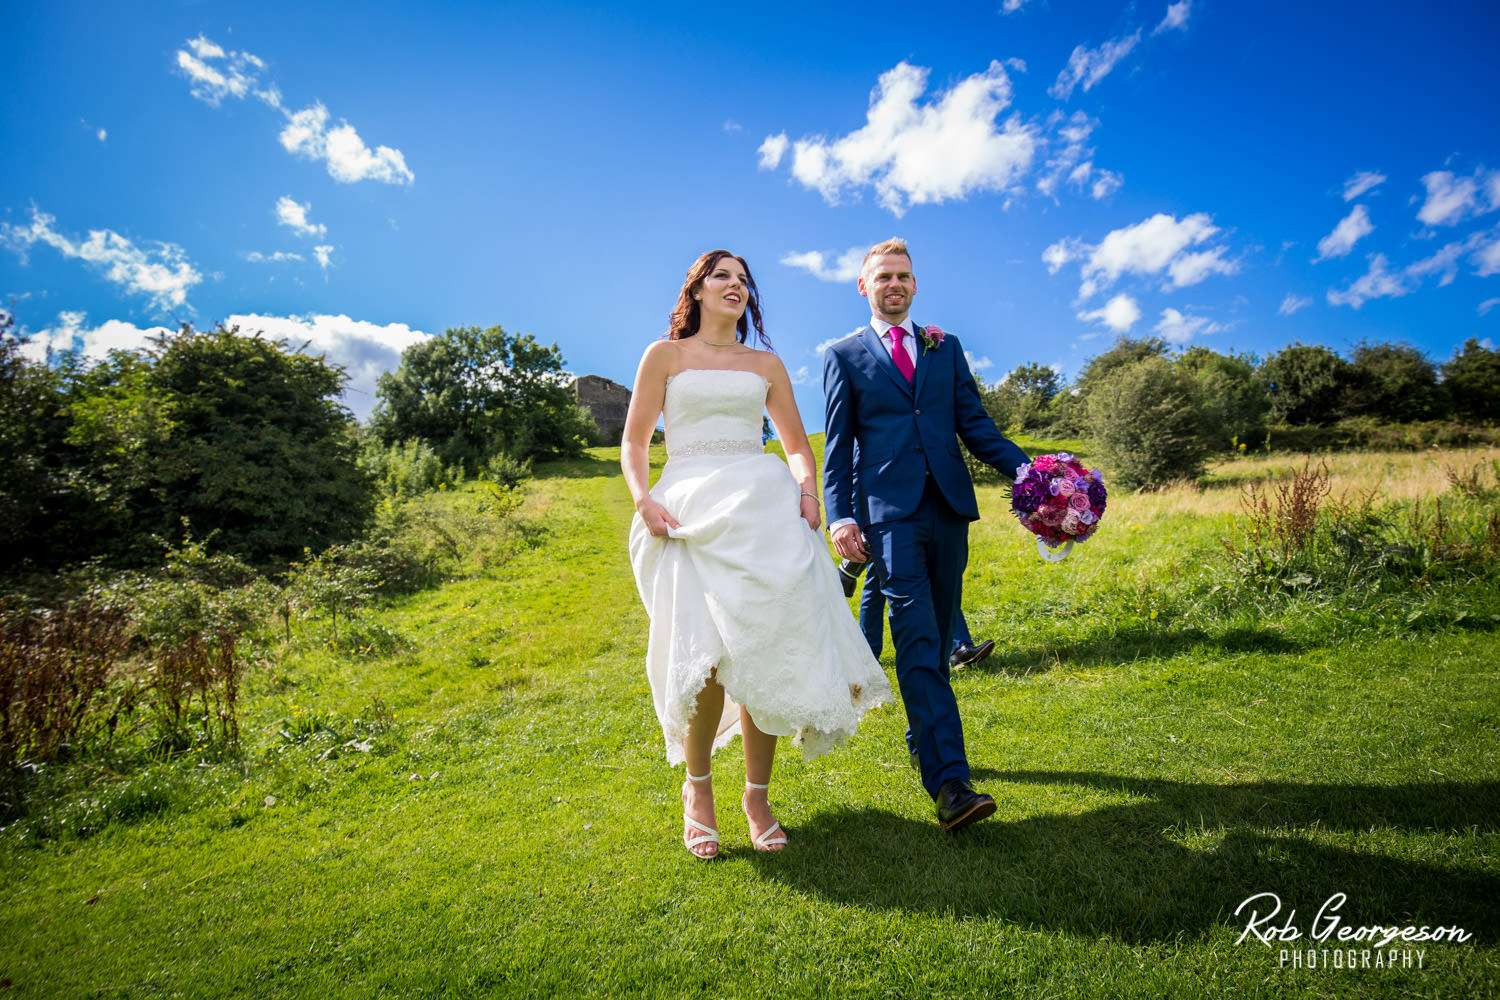 Castle_Green_Hotel_Kendal_Wedding_Photographer (39).jpg